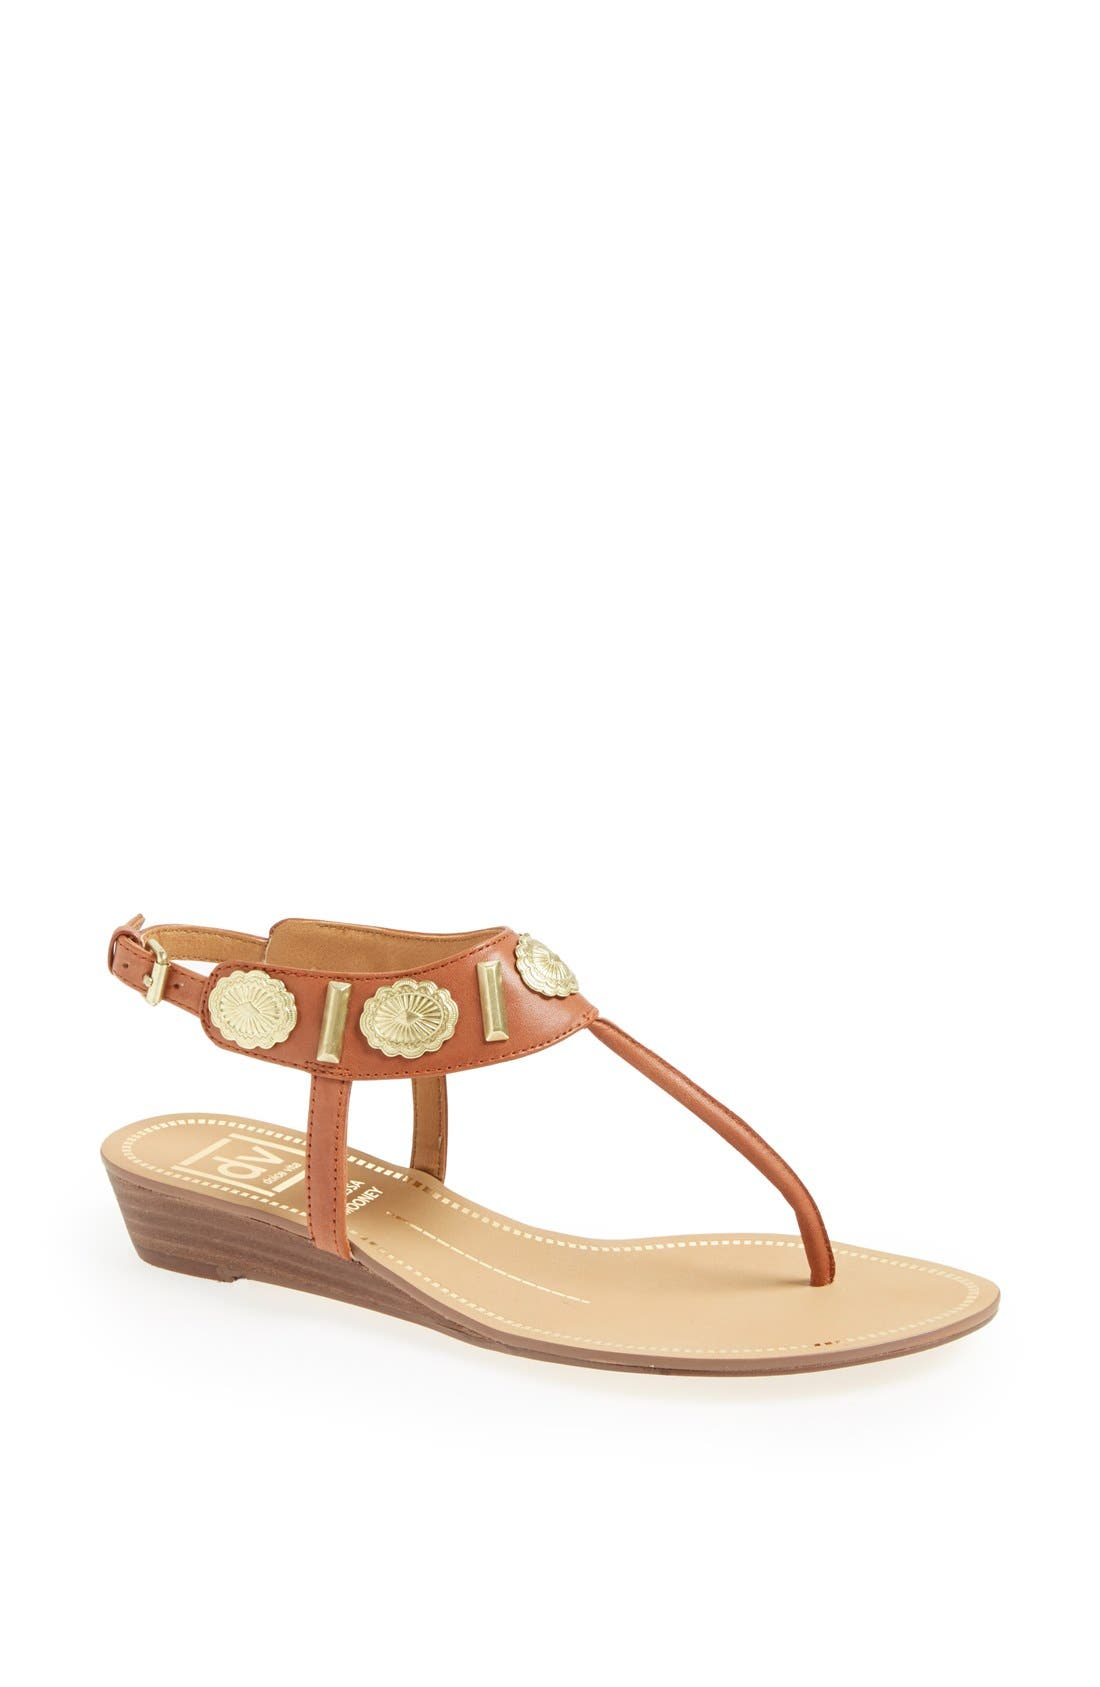 Alternate Image 1 Selected - DV by Dolce Vita by Vanessa Mooney 'Austyn' Sandal